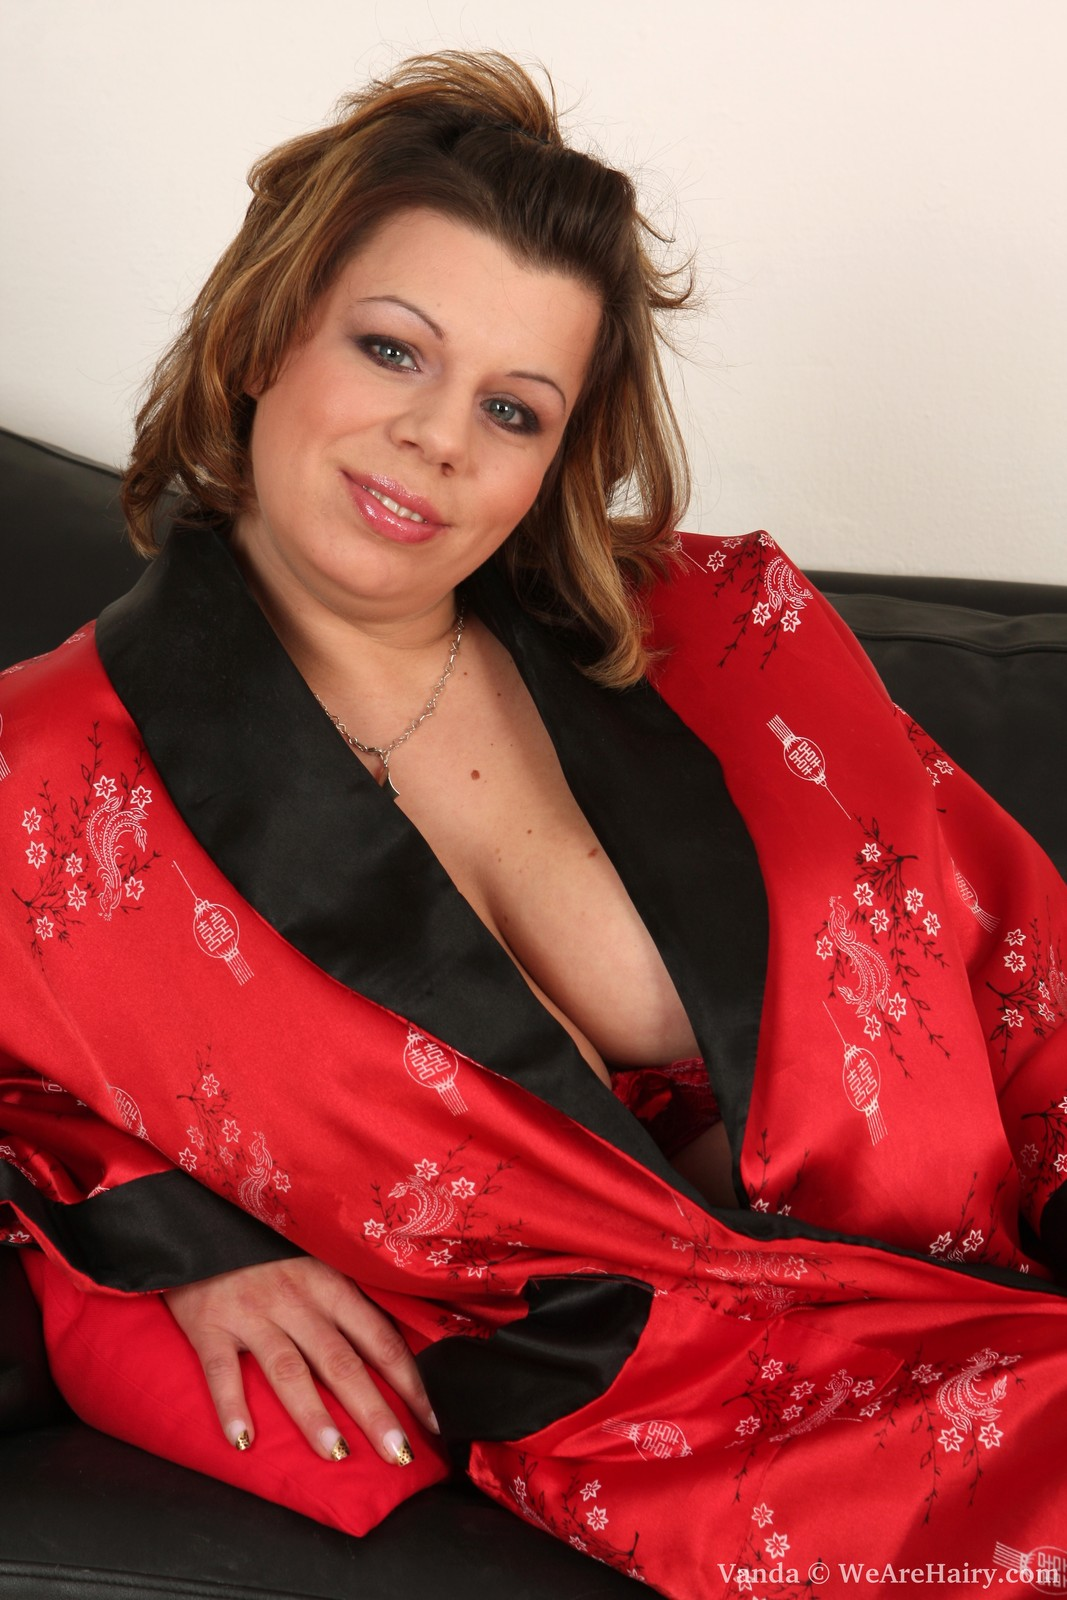 Busty BBW Vanda plays in her red lingerie and disrobes to show her unshaven pussy